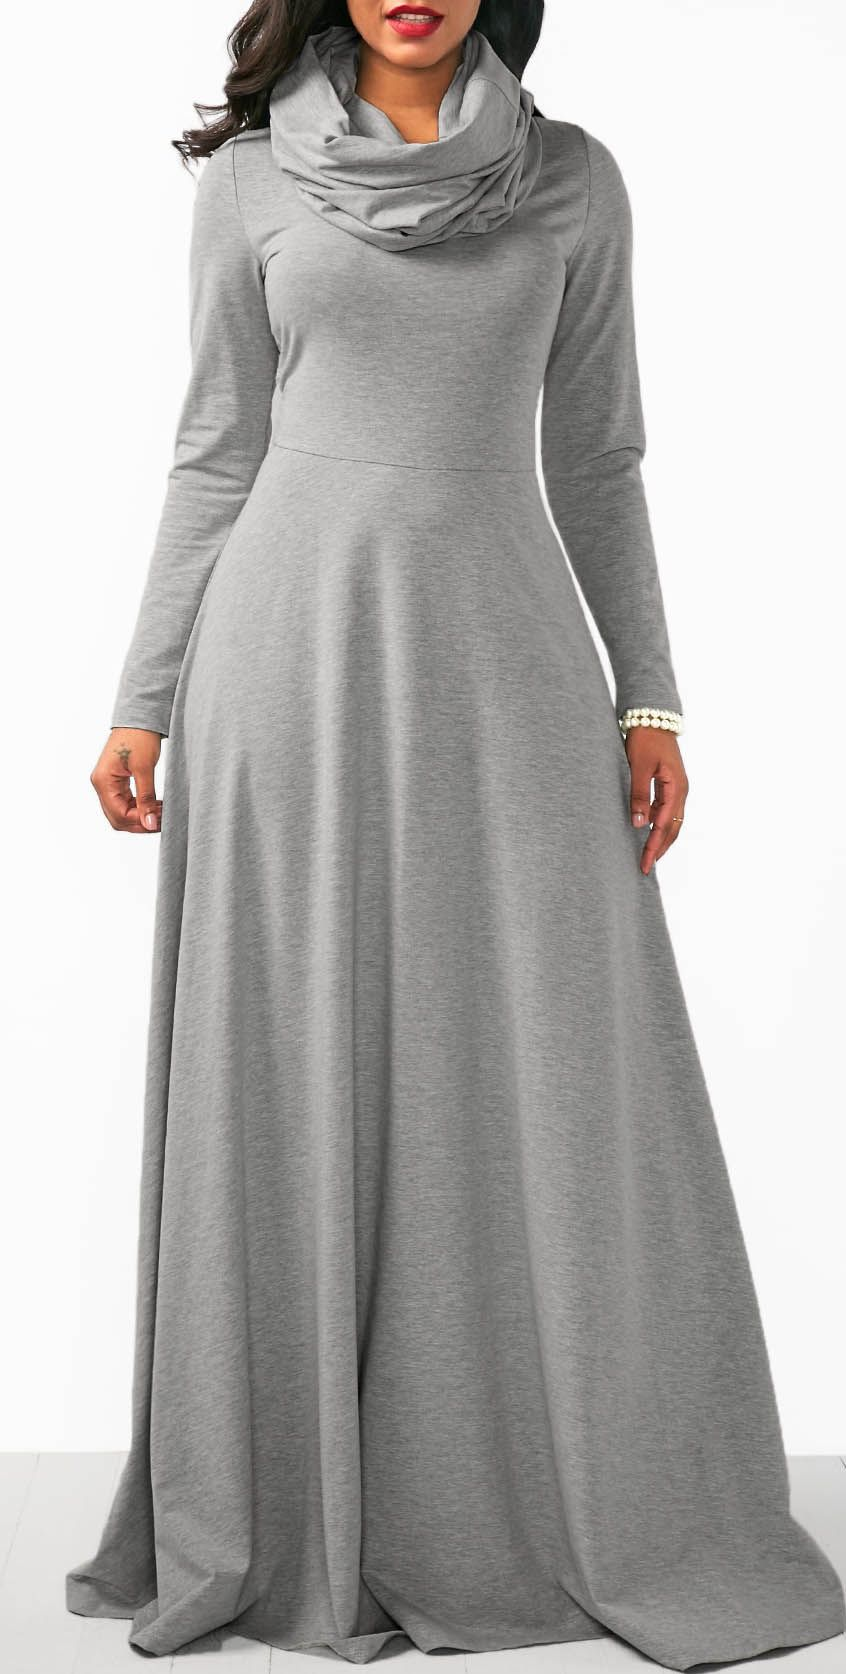 Grey cowl neck long sleeve maxi dress things that i want to buy